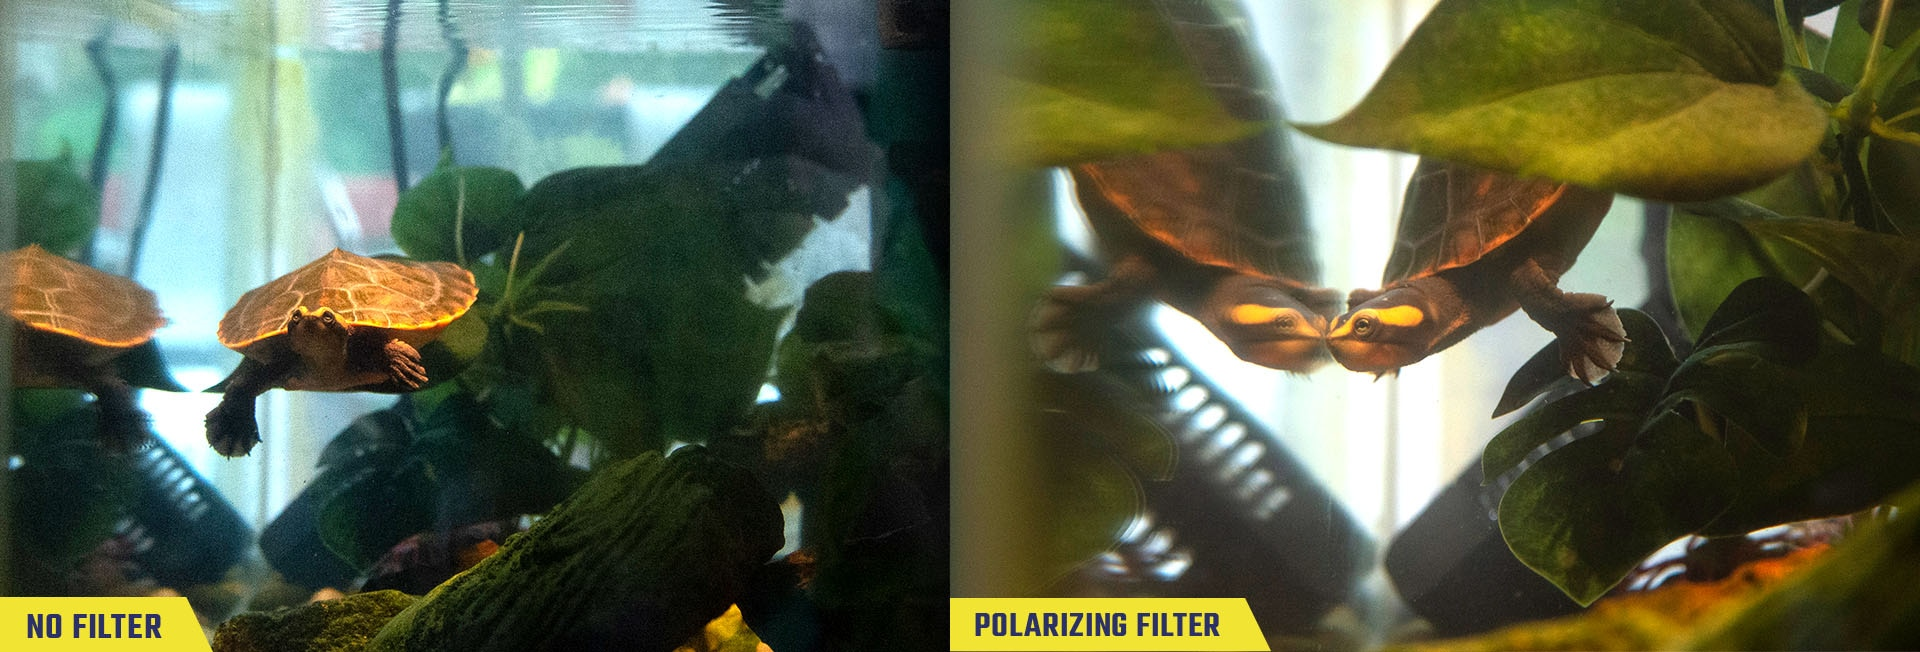 Sample photos of a turtle in an indoor tank aquarium taken with no filter and with the polarizing filter, labeled respectively.